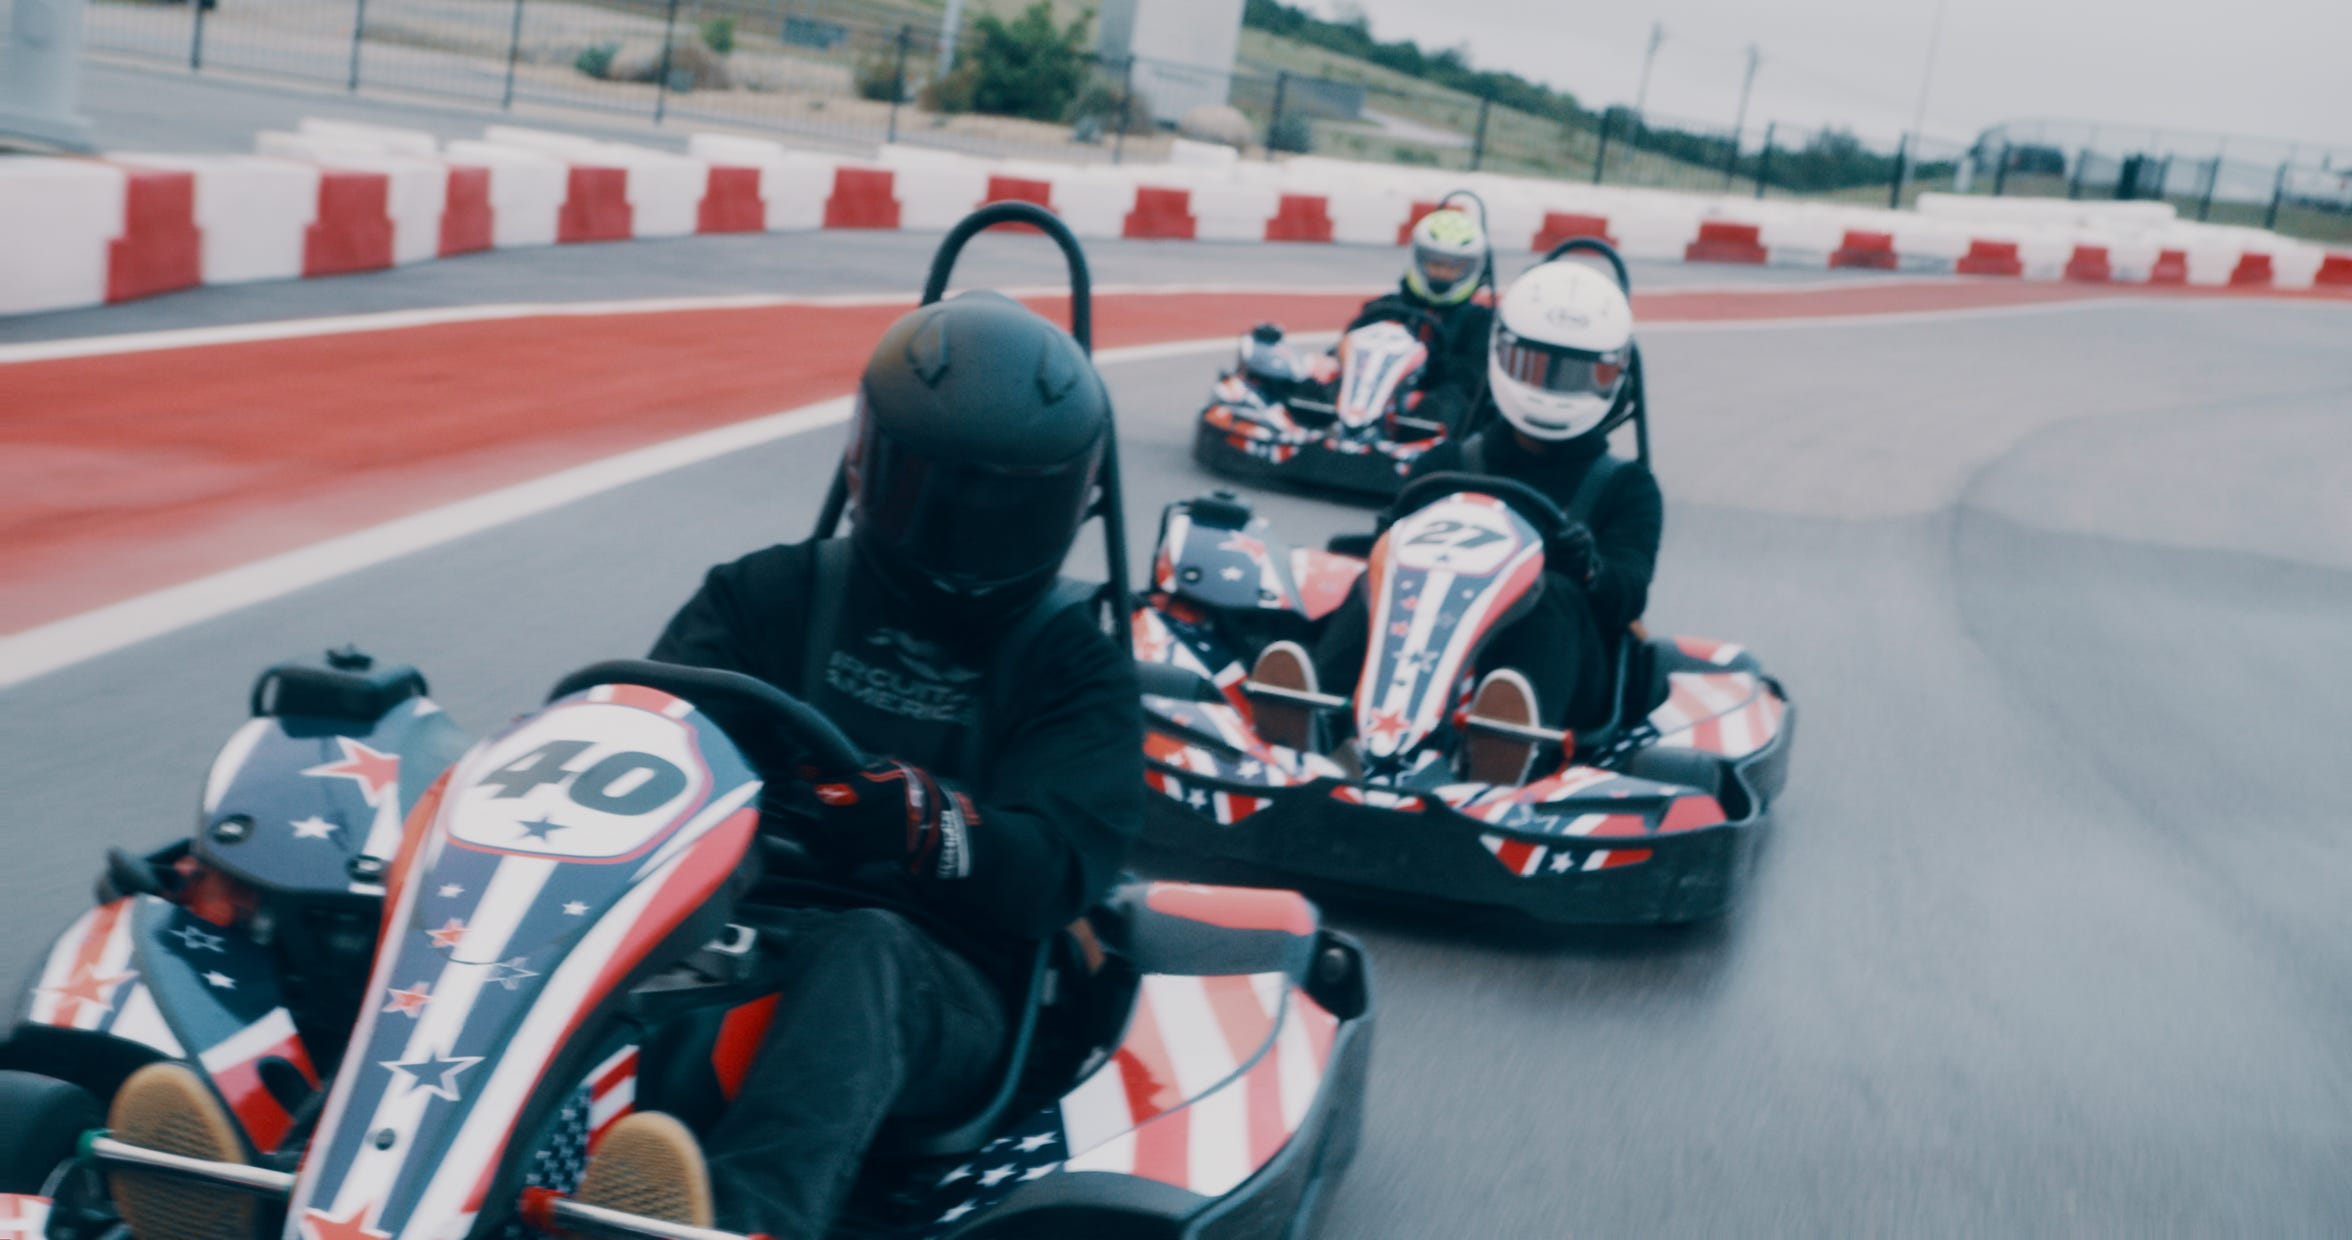 For $28 a driver, COTA visitors can speed through a course just under a mile long while driving at speeds of 50 mph.